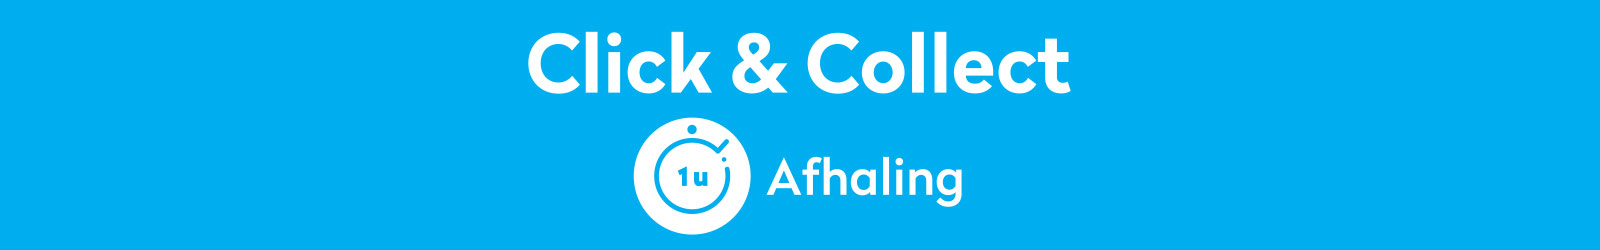 Header click&collect